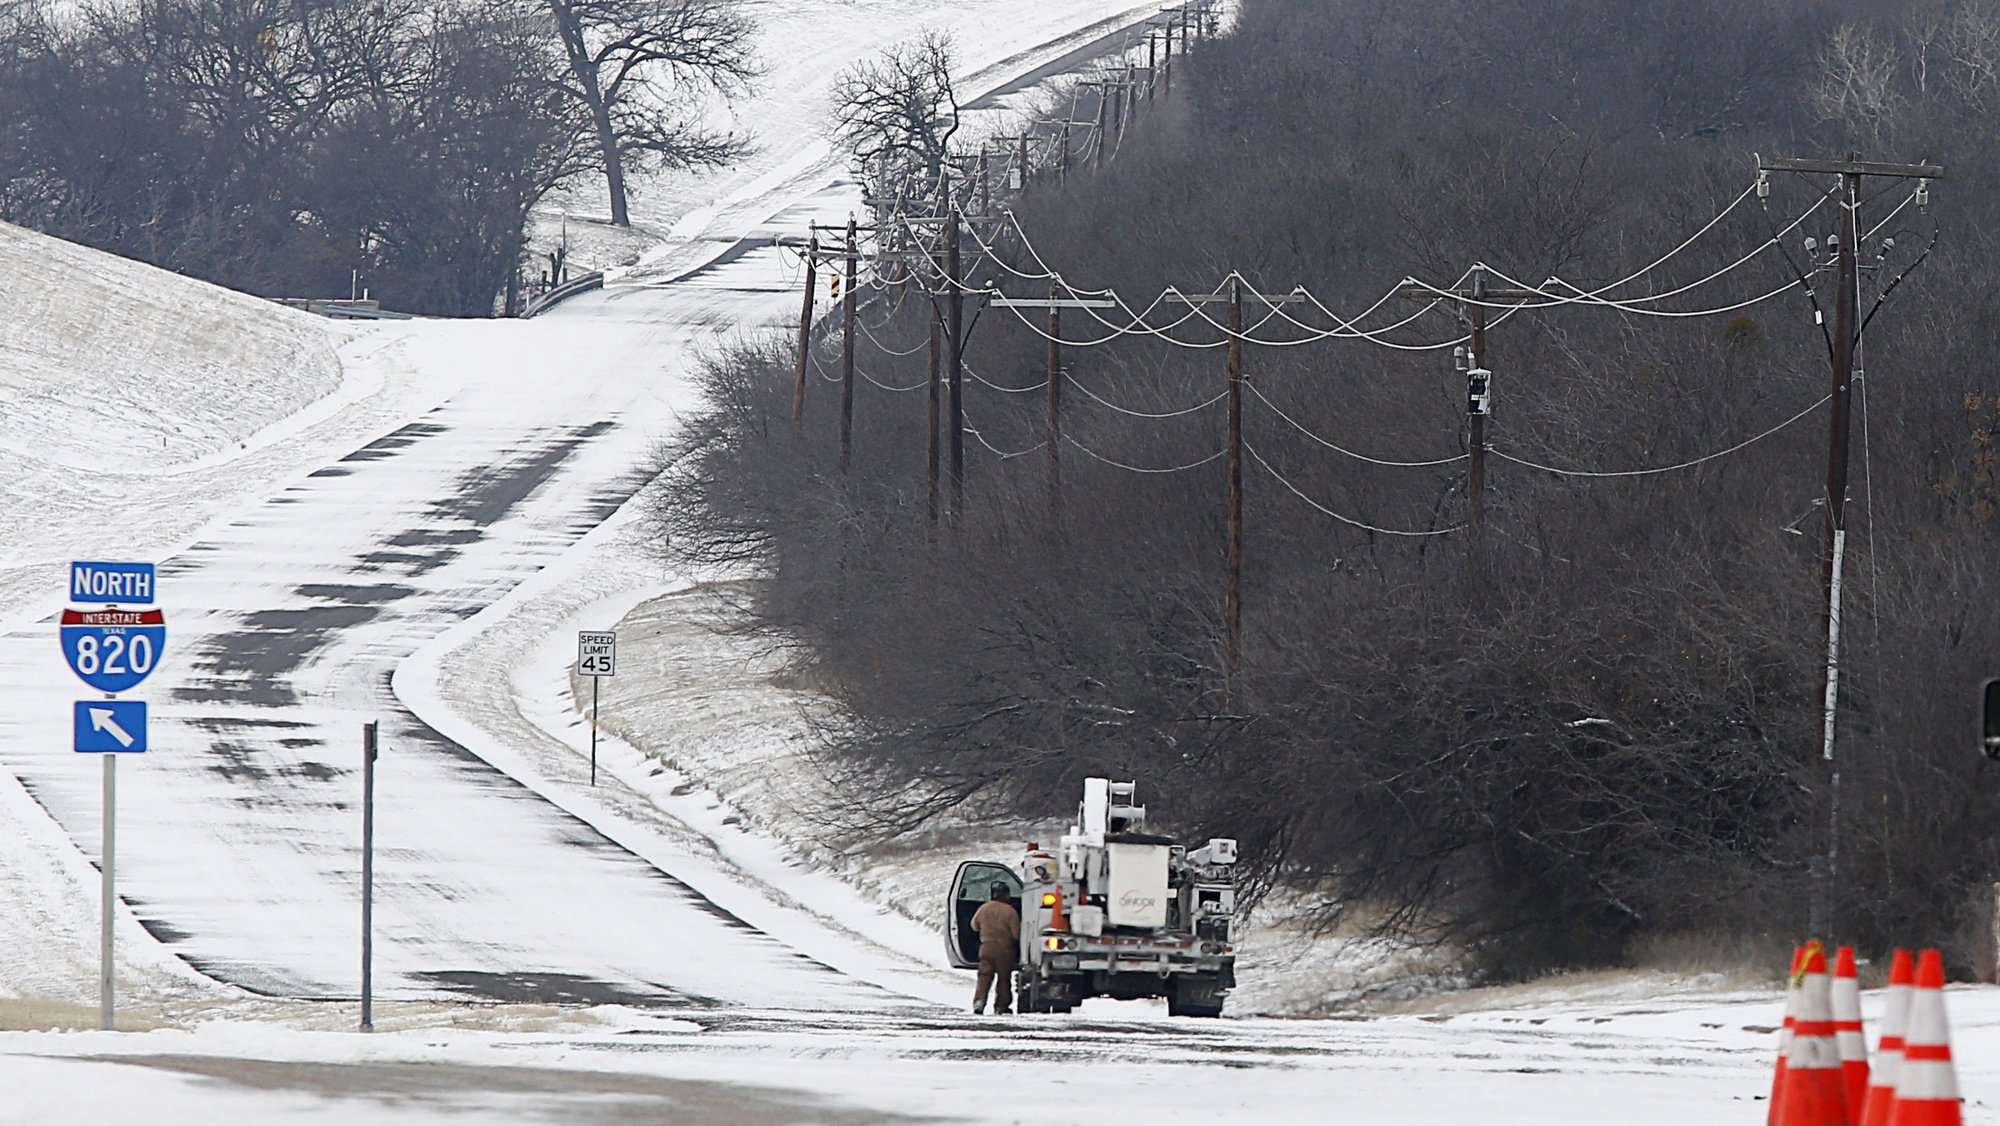 epa09020166 An Oncor Power truck and crew work along Loop 820 in Fort Worth, Texas, 17 February 2021. The electric grid in Texas run by the non profit Ercot, has been overwhelmed by high demand leaving millions without power in the state. Snow and cold weather have blanket North Texas for the fourth day in unseasonably cold weather, with overnight temperatures dropping to -10 degrees celsius in Fort Worth.  EPA/Ralph Lauer